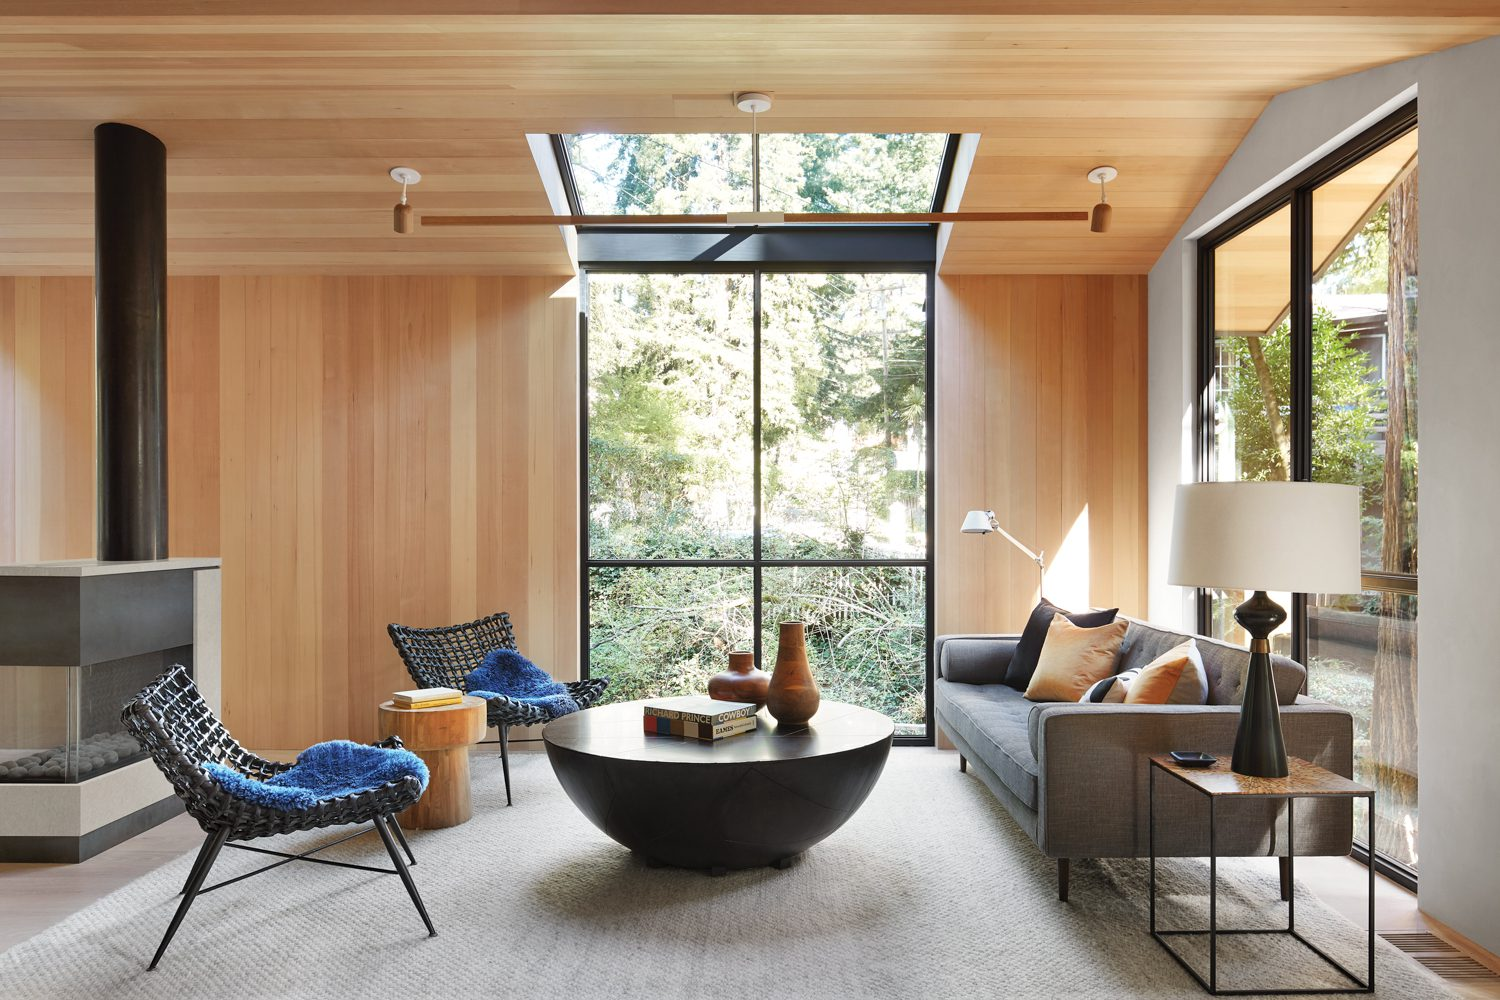 Walls and ceiling are paneled with hemlock, while flooring is European white oak.